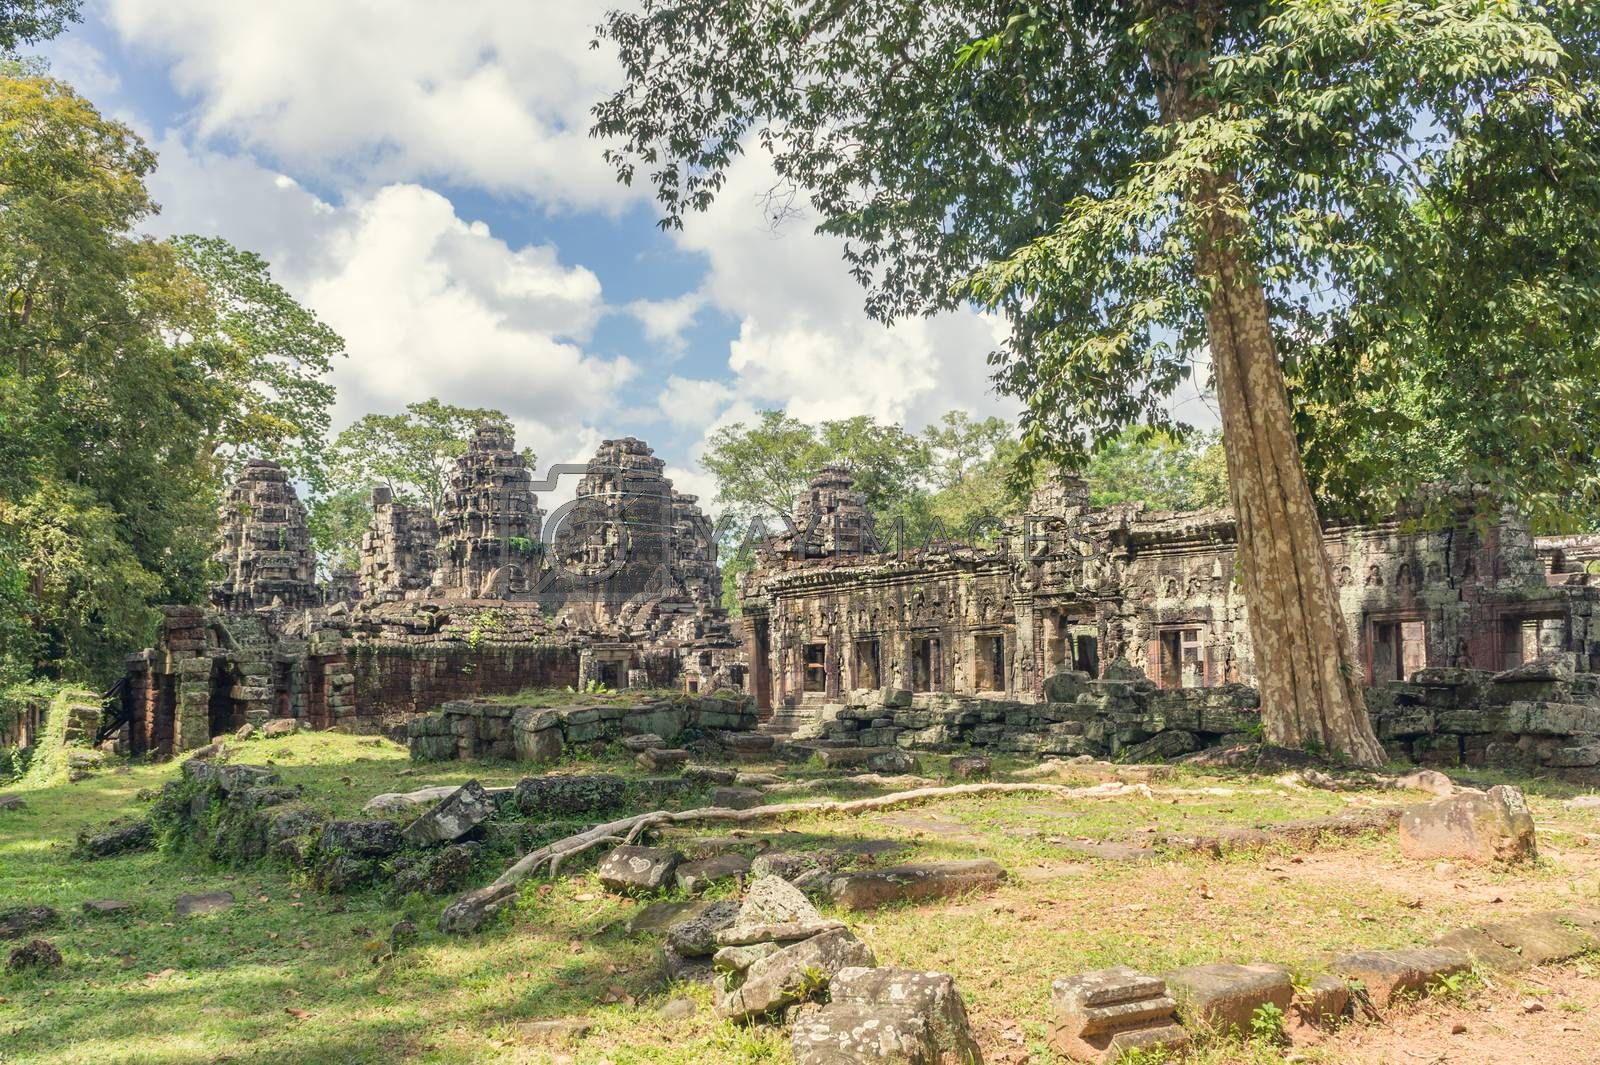 Angkor Wat in Cambodia. Ancient temple complex Banteay Kdei